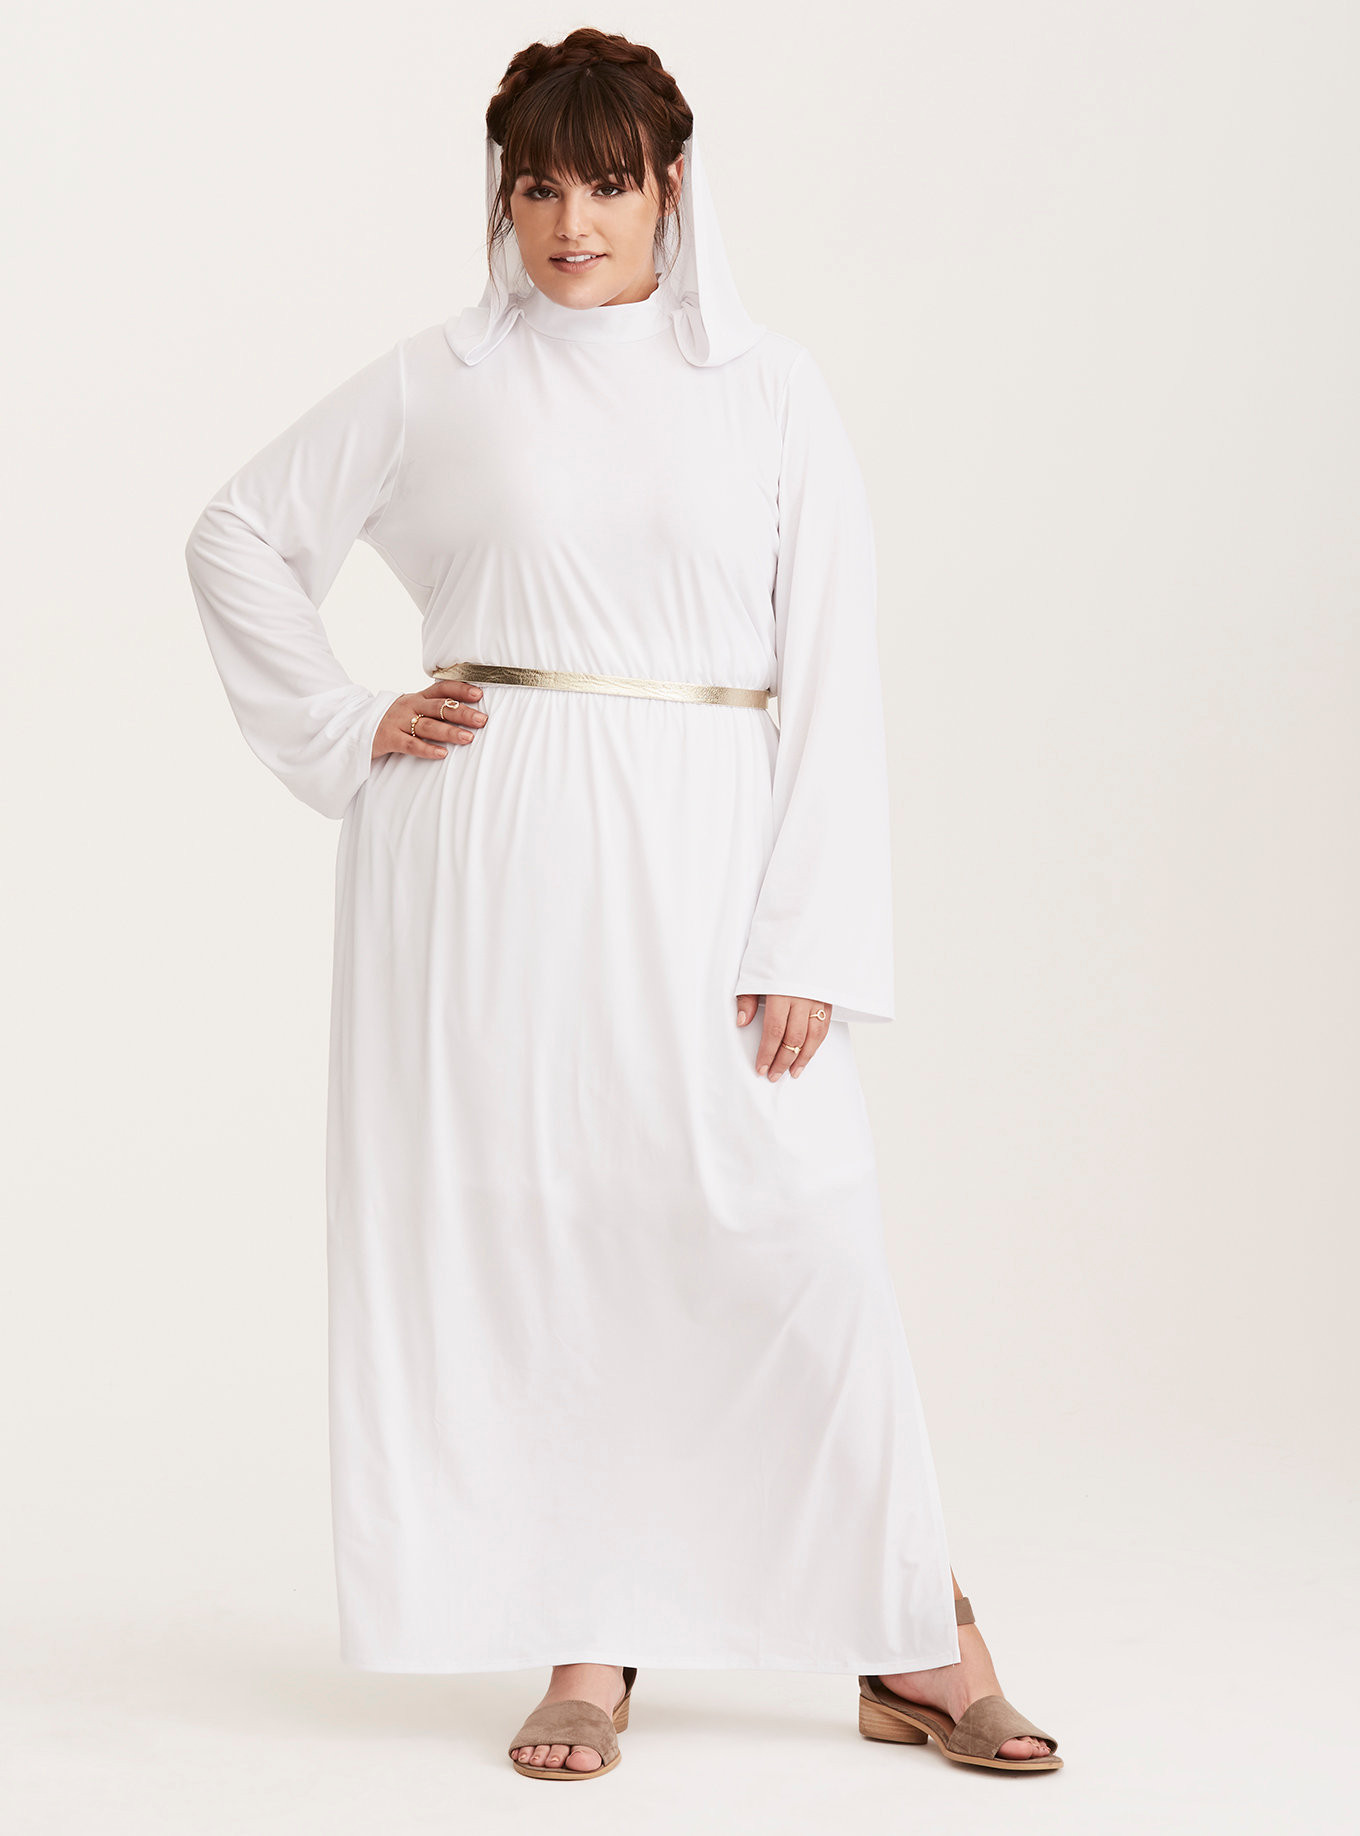 94b134e4069 Her Universe x Star Wars Princess Leia everyday cosplay style costume dress  at Torrid